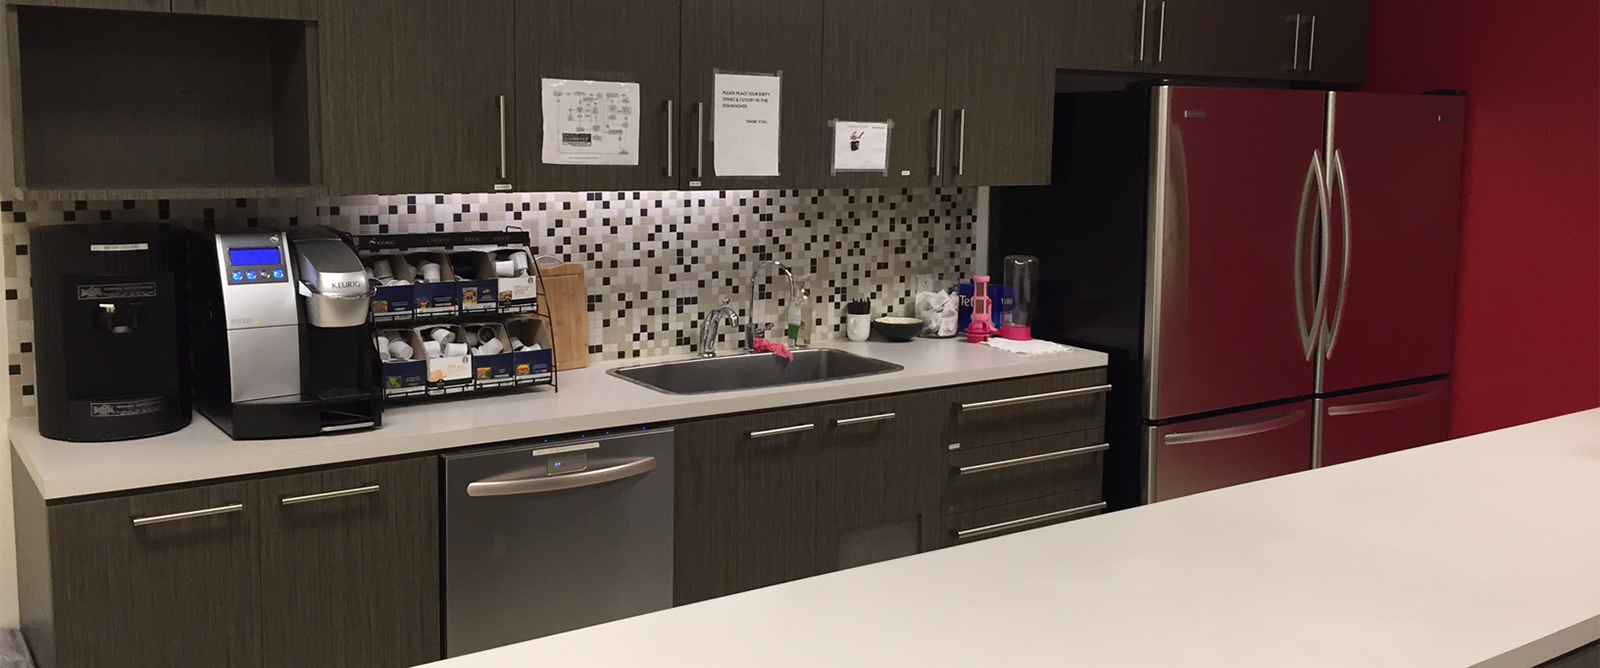 Kitchens, Washrooms, Staff and Break Rooms